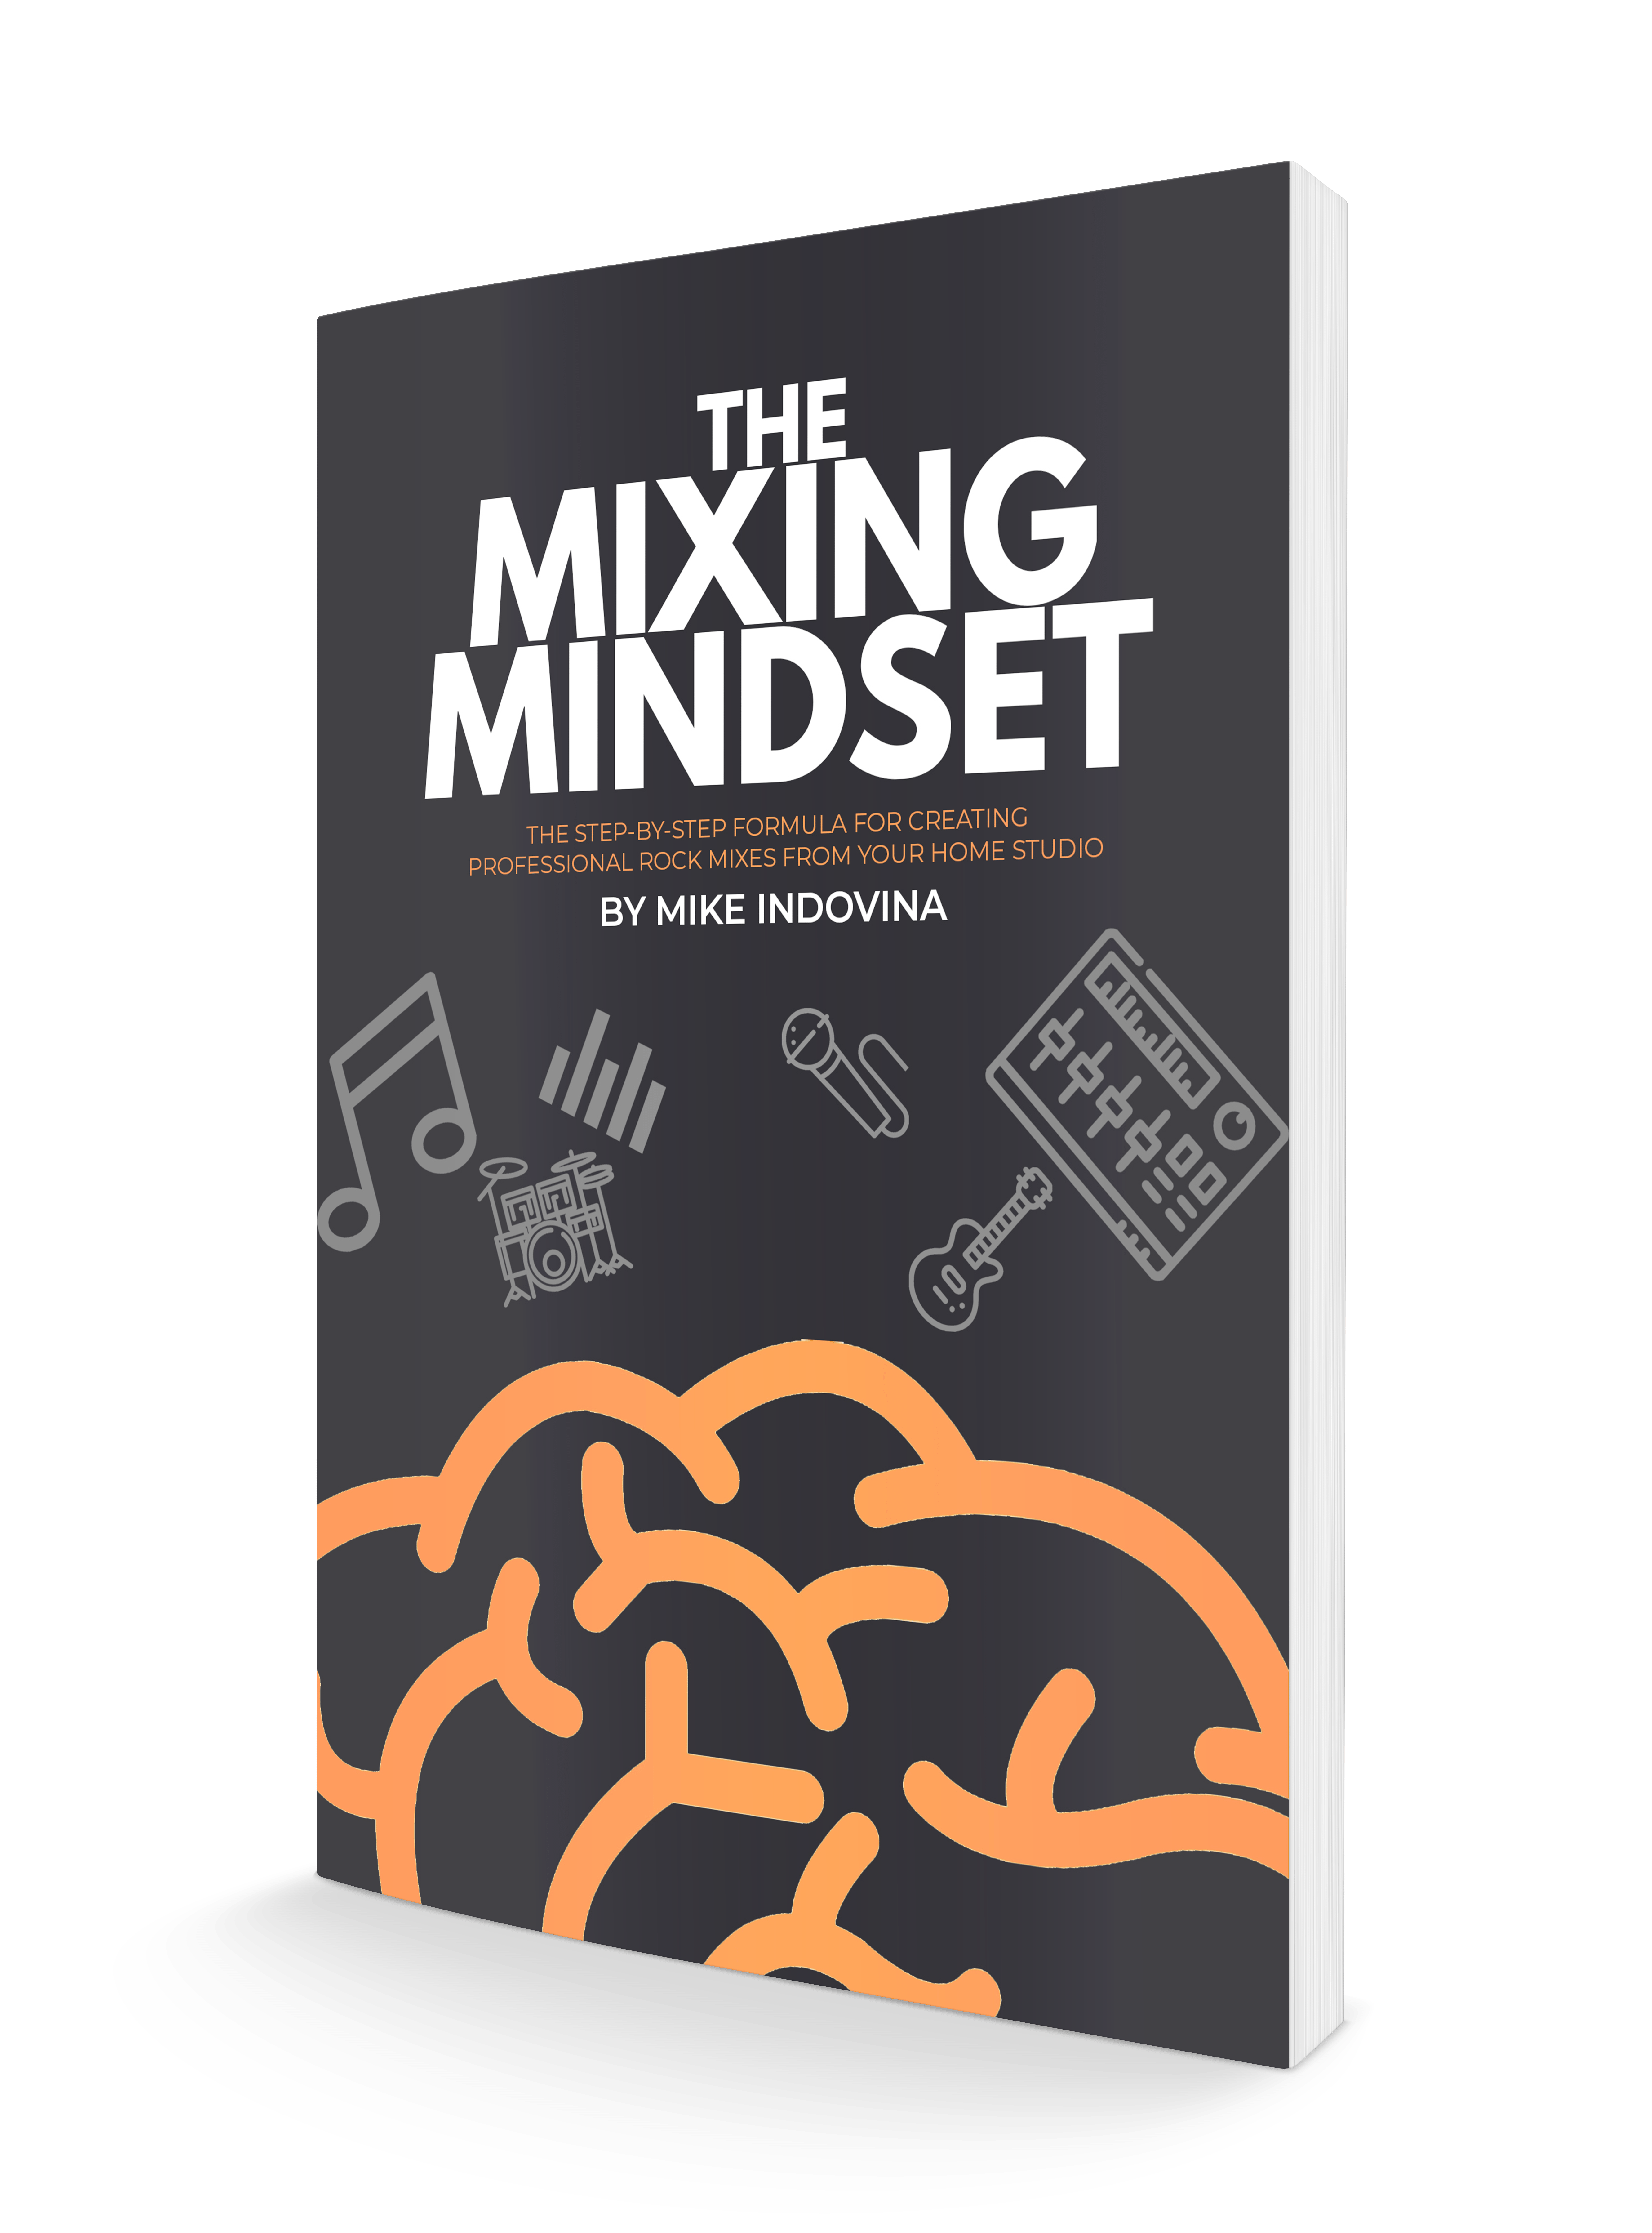 The Mixing Mindset, book, how to mix music, how to eq, how to use compression, mixing workflow